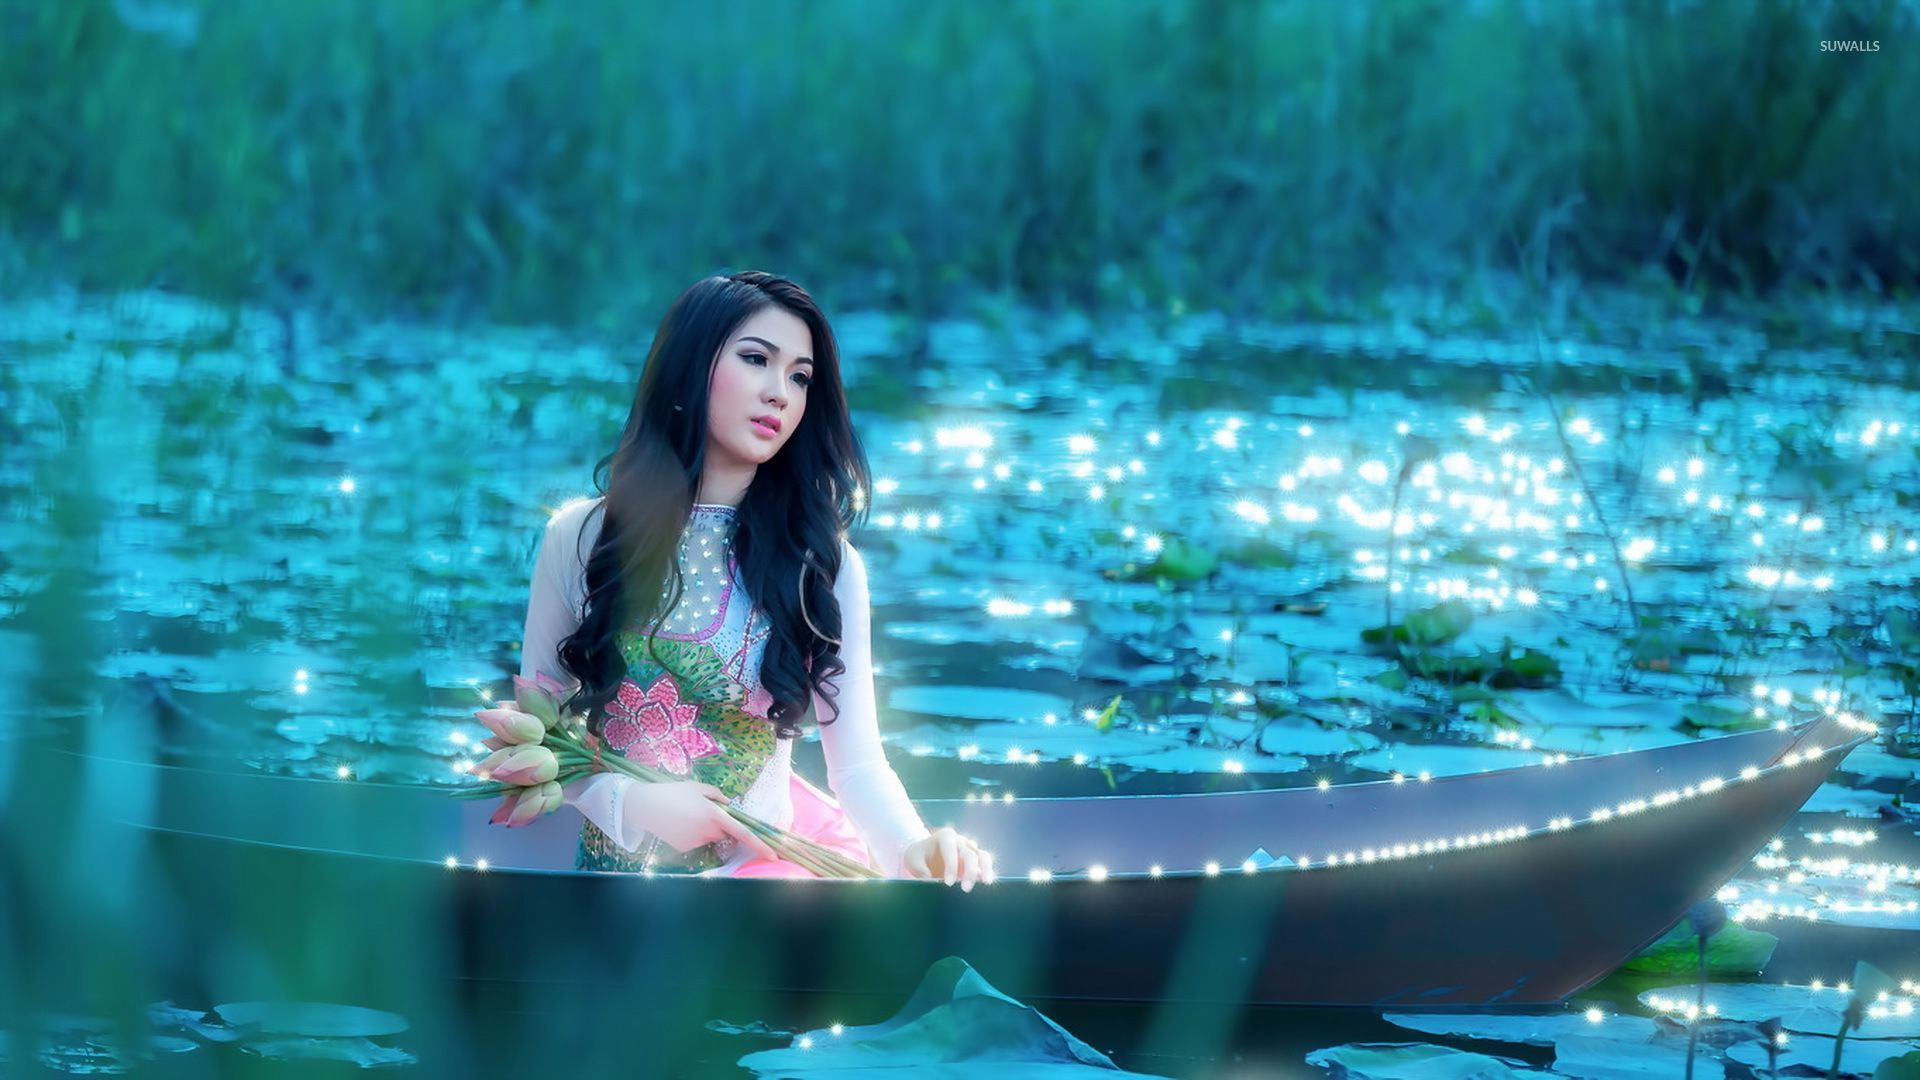 Anime Girl Chinese Dress Blue Wallpaper Girl With Flowers Sitting In The Boat Wallpaper Girl